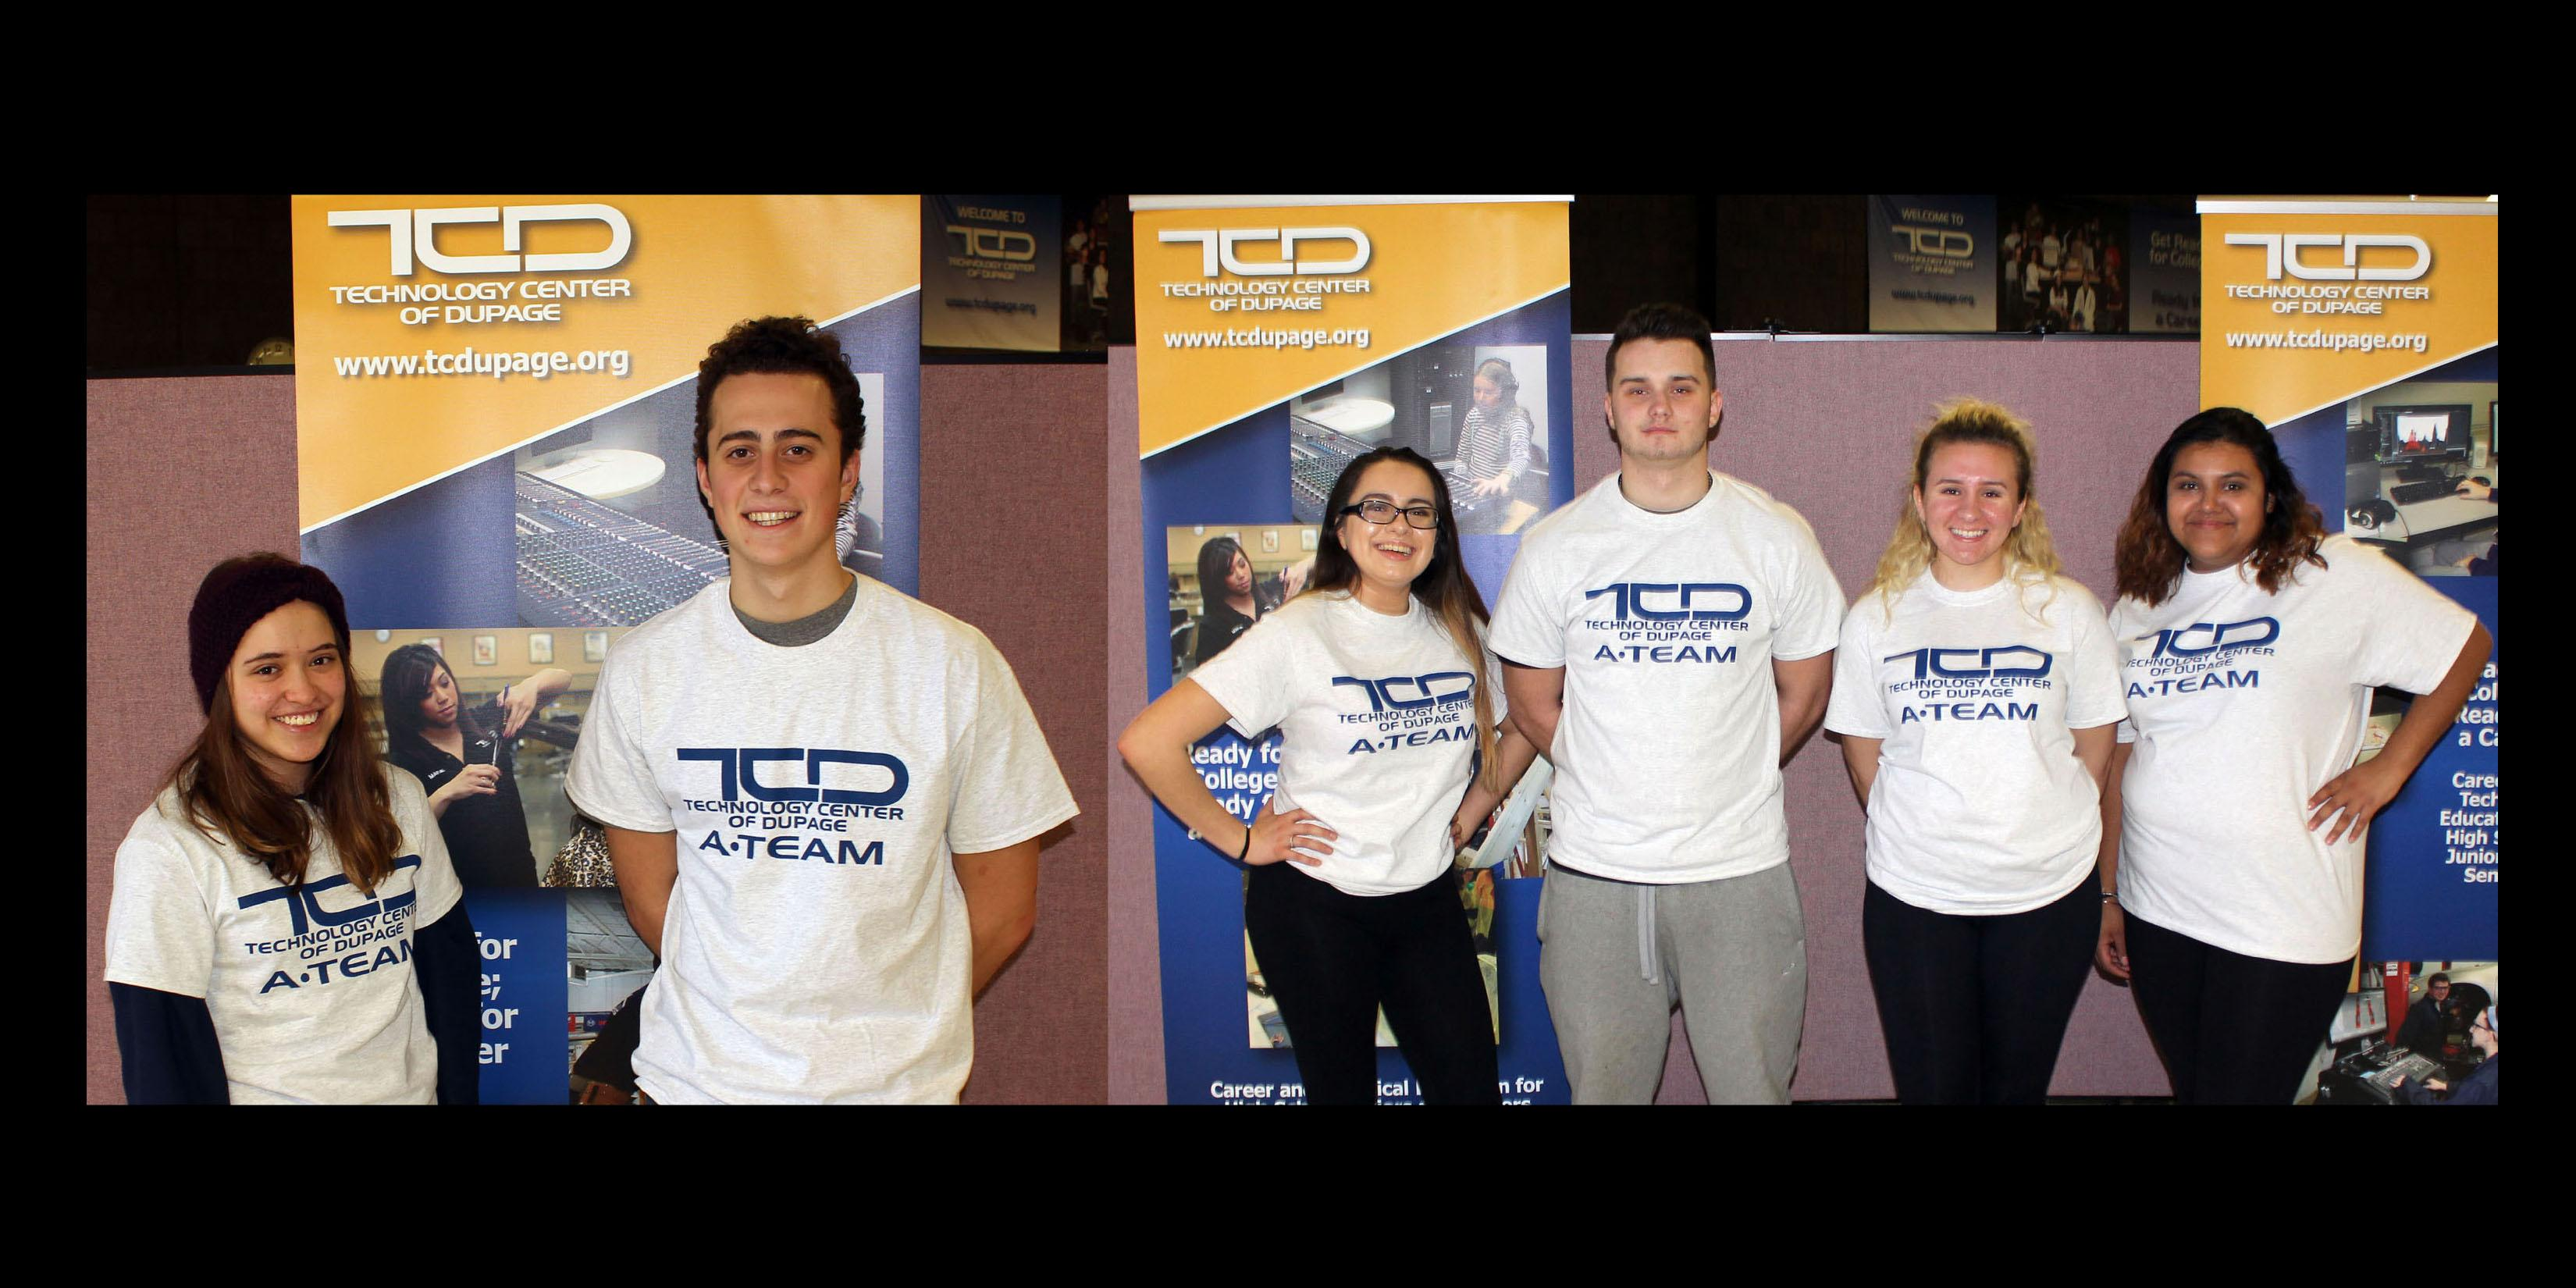 Addison Trail students named to TCD's A-Team Honor Roll